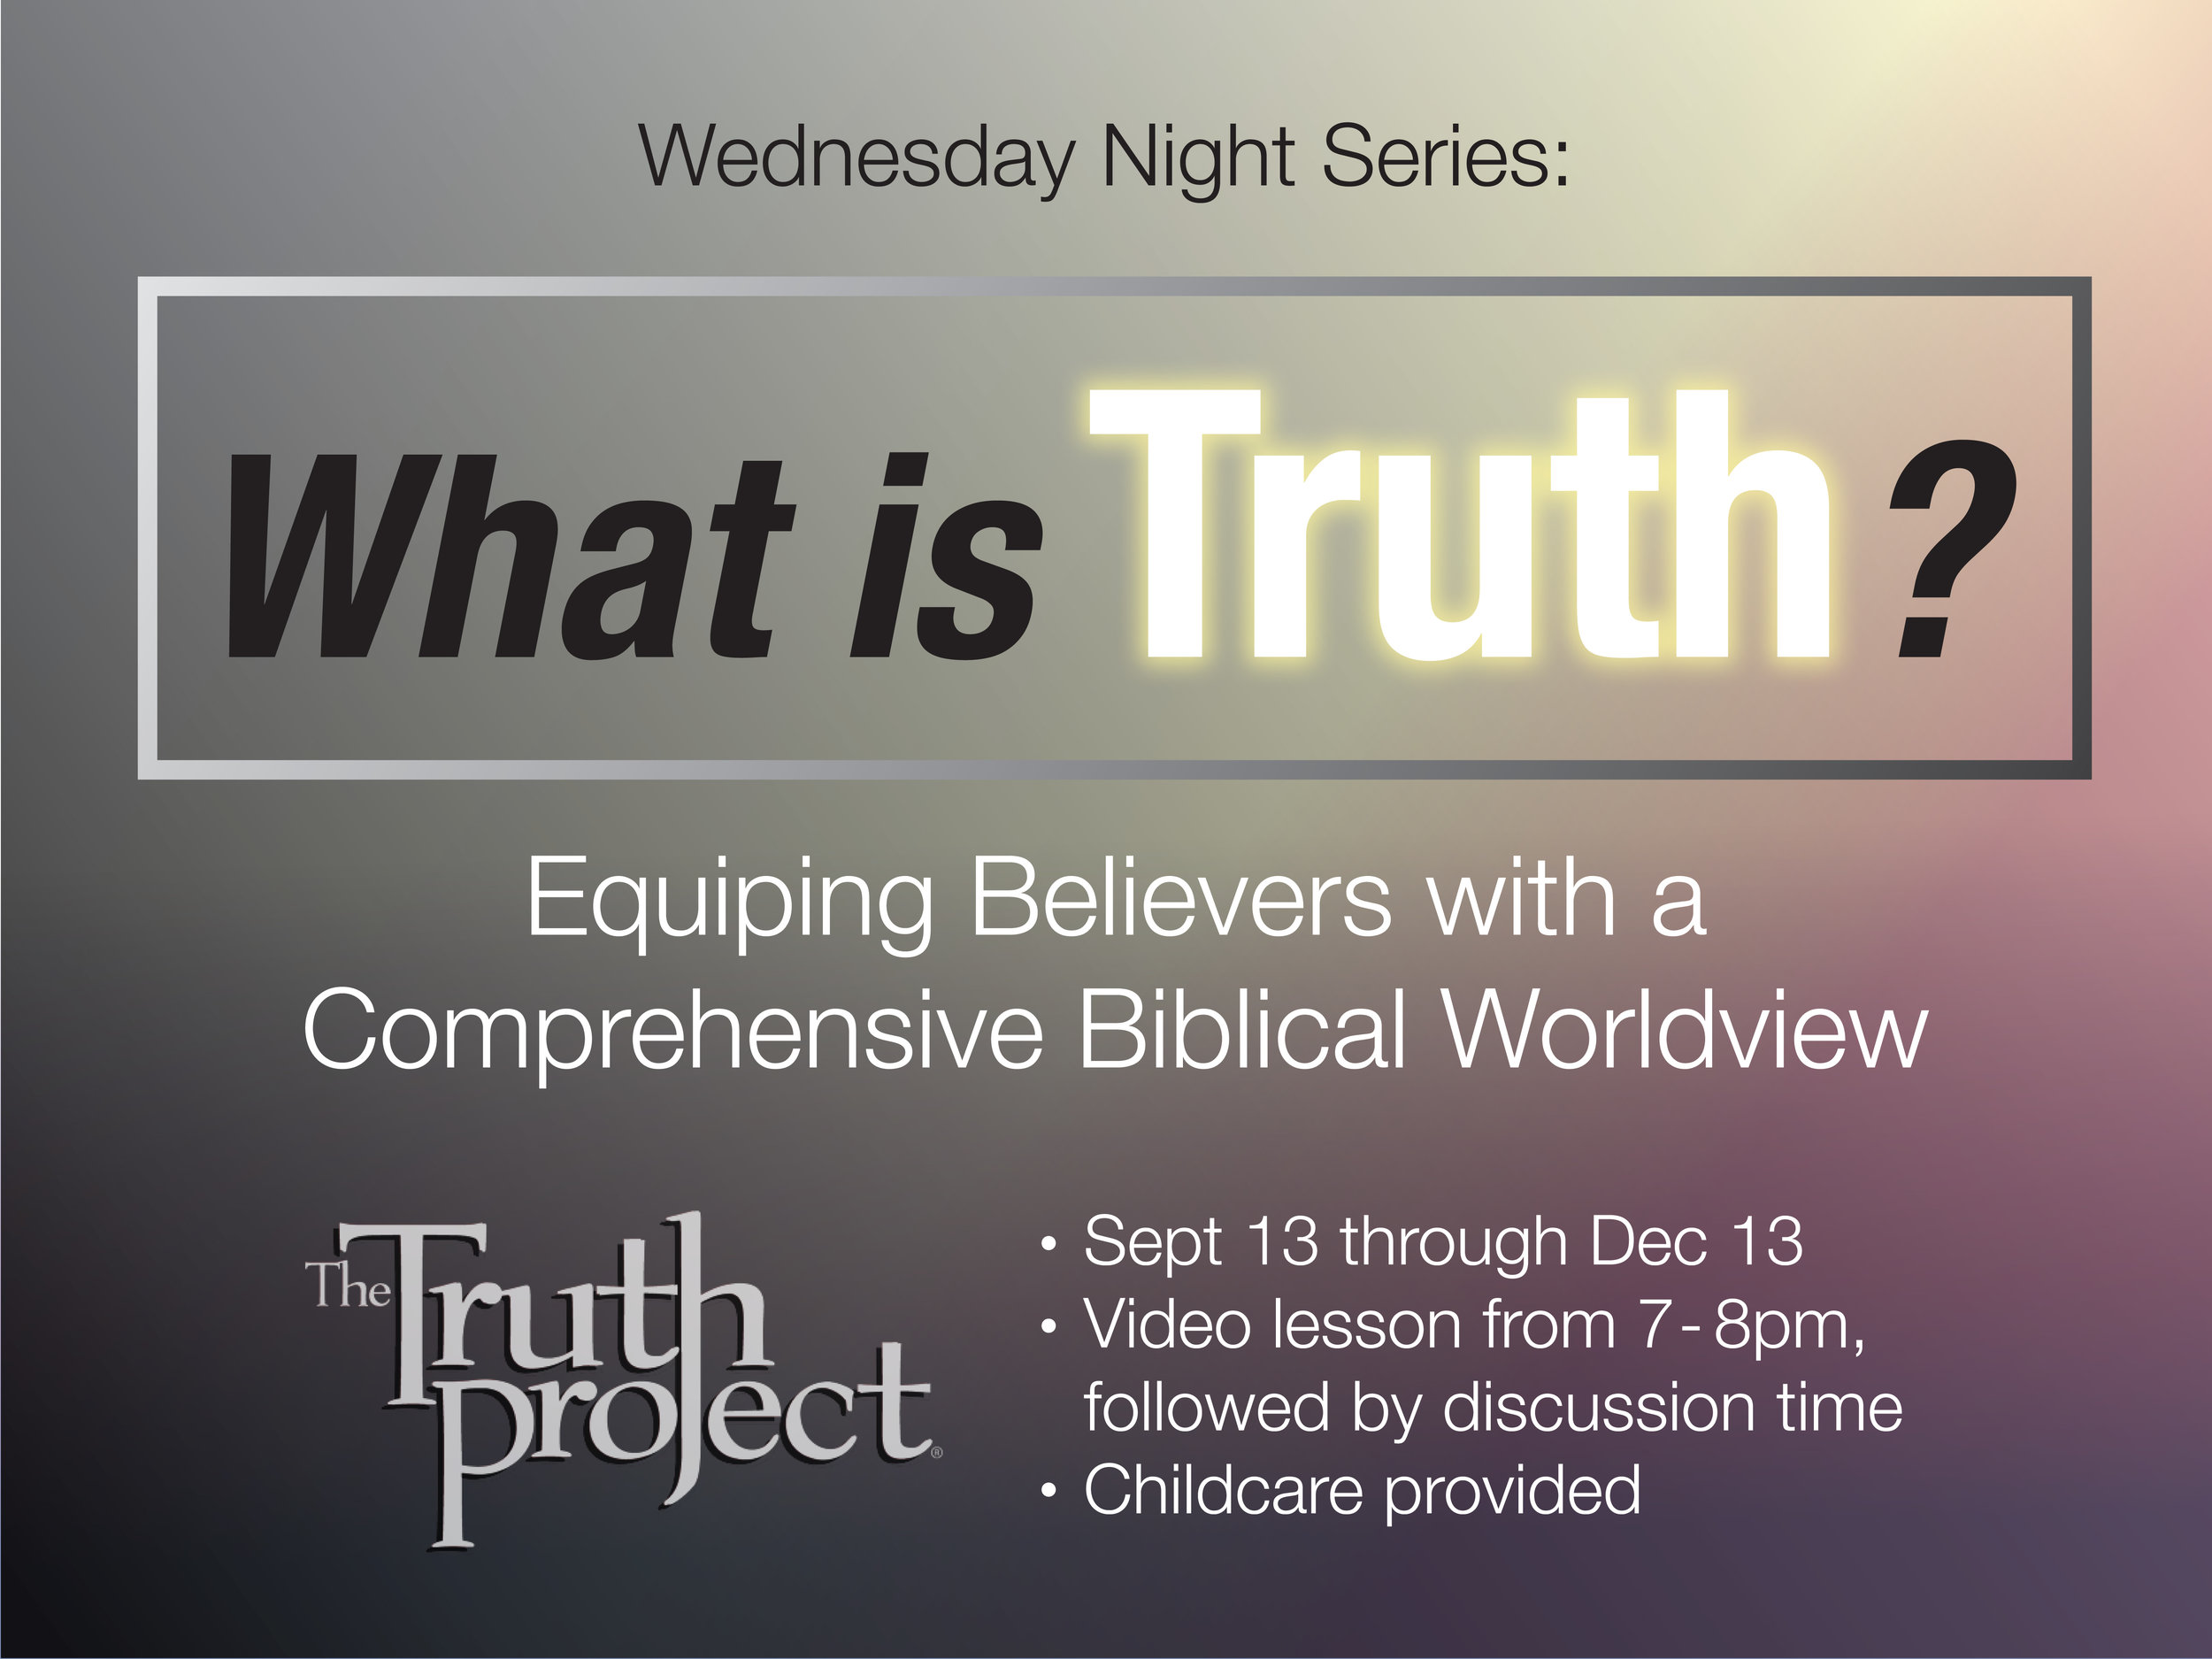 Wednesdays in the Fall:   Join us for  The Truth Project —  A video series exploring a comprehensive Christian worldview study with group discussion.   Wednesdays 7-9pm  or the AIM (Author's Intended Meaning) study in the book of Hebrews this Fall  Wednesdays 6-9pm.